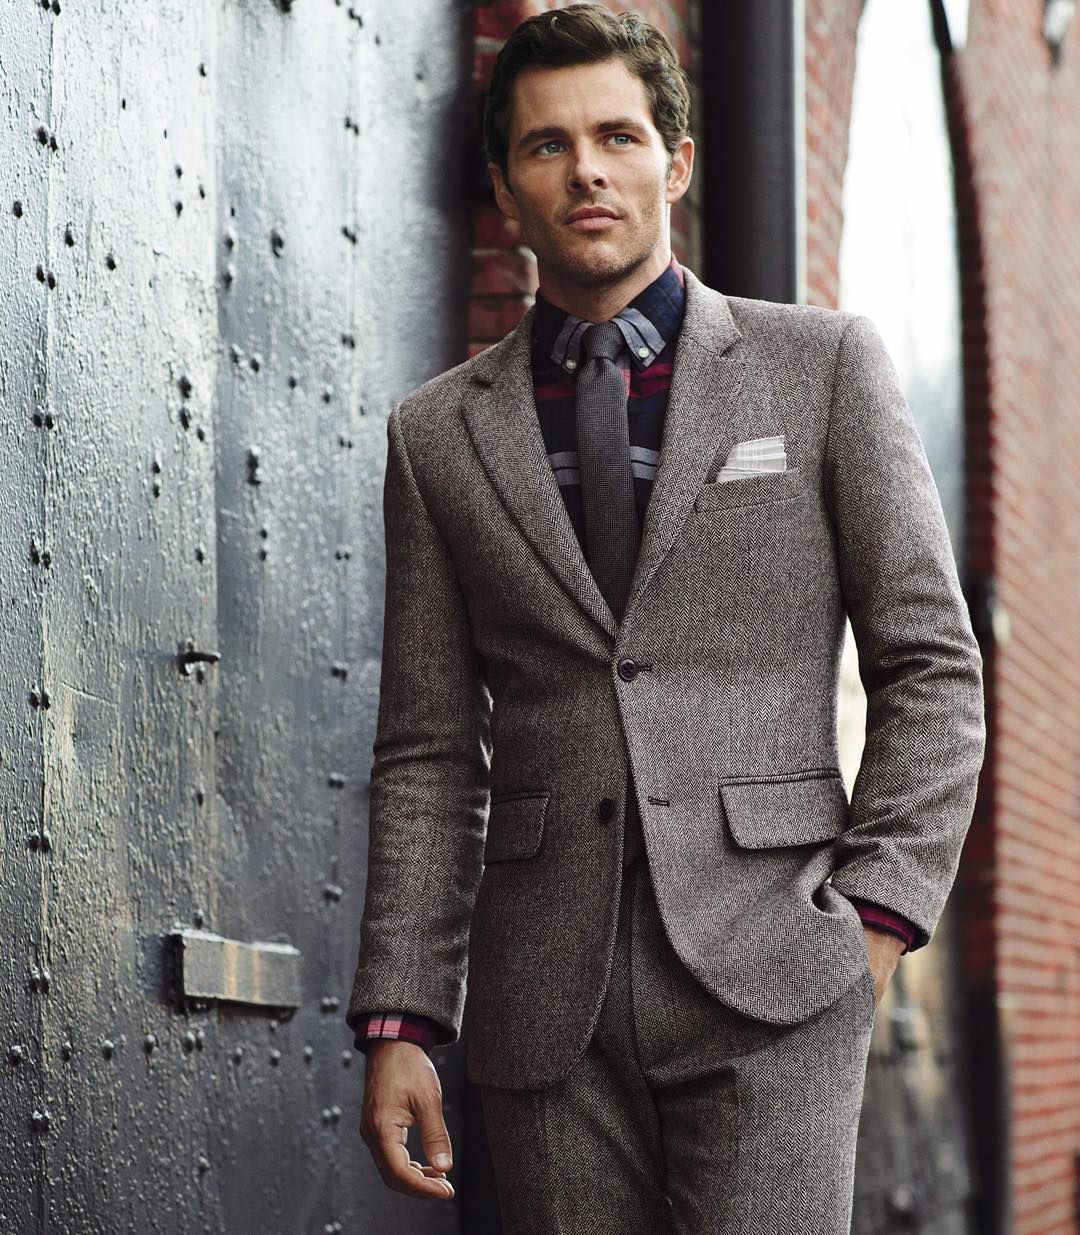 """""""What to Wear Today: A bold plaid shirt with your autumnal suit. (Photo by @nathanielgoldberg) #wtwt #ootd"""""""